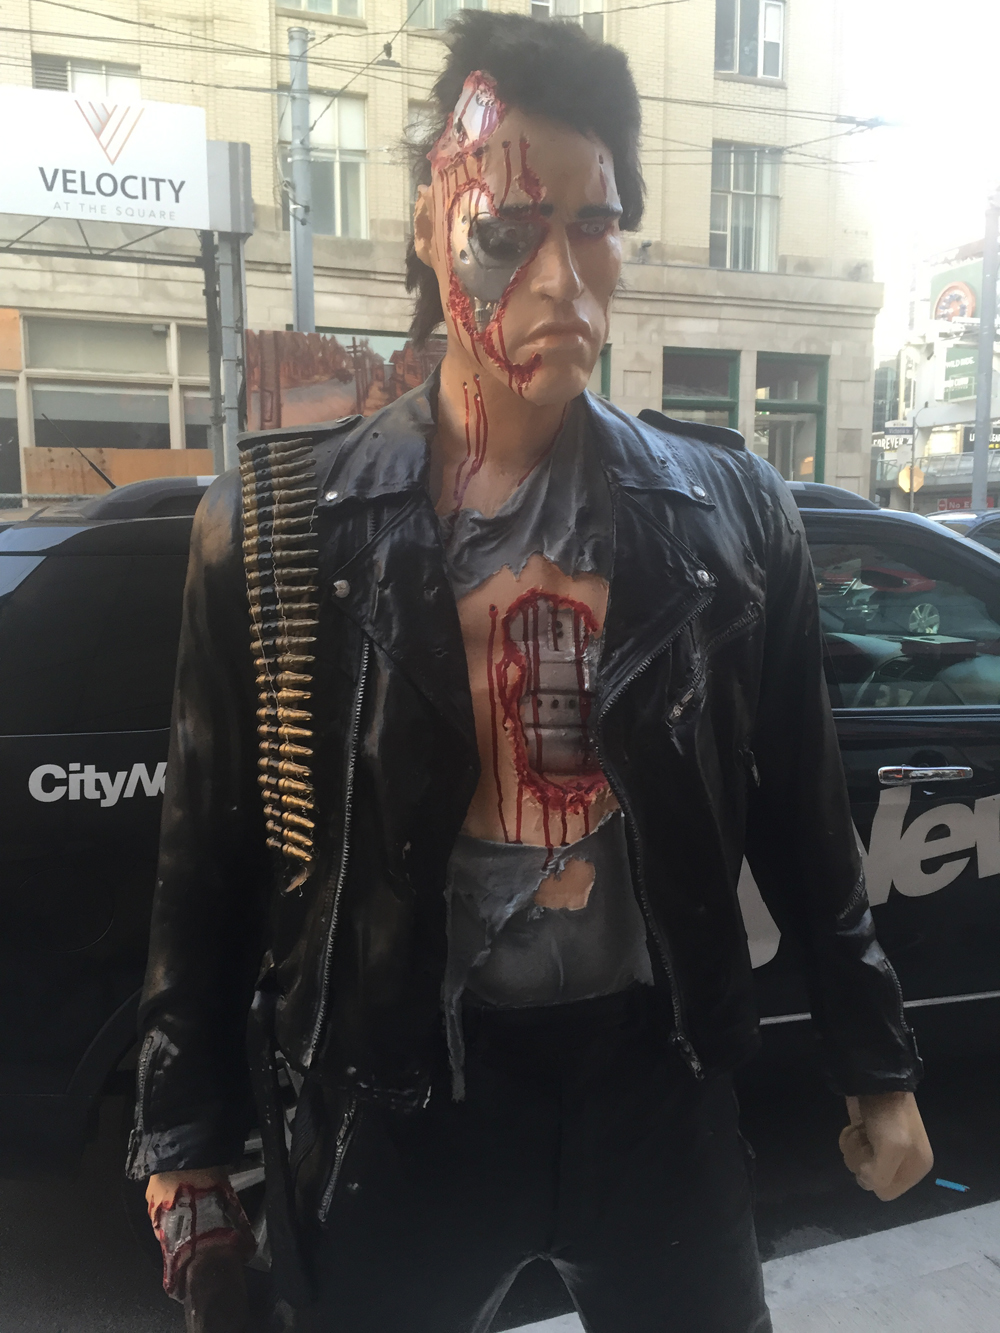 This Terminator prop caused a gun scare, found by CityNews cameraman Bert Dandy on Aug. 4, 2016. CITYNEWS/Diana Pereira